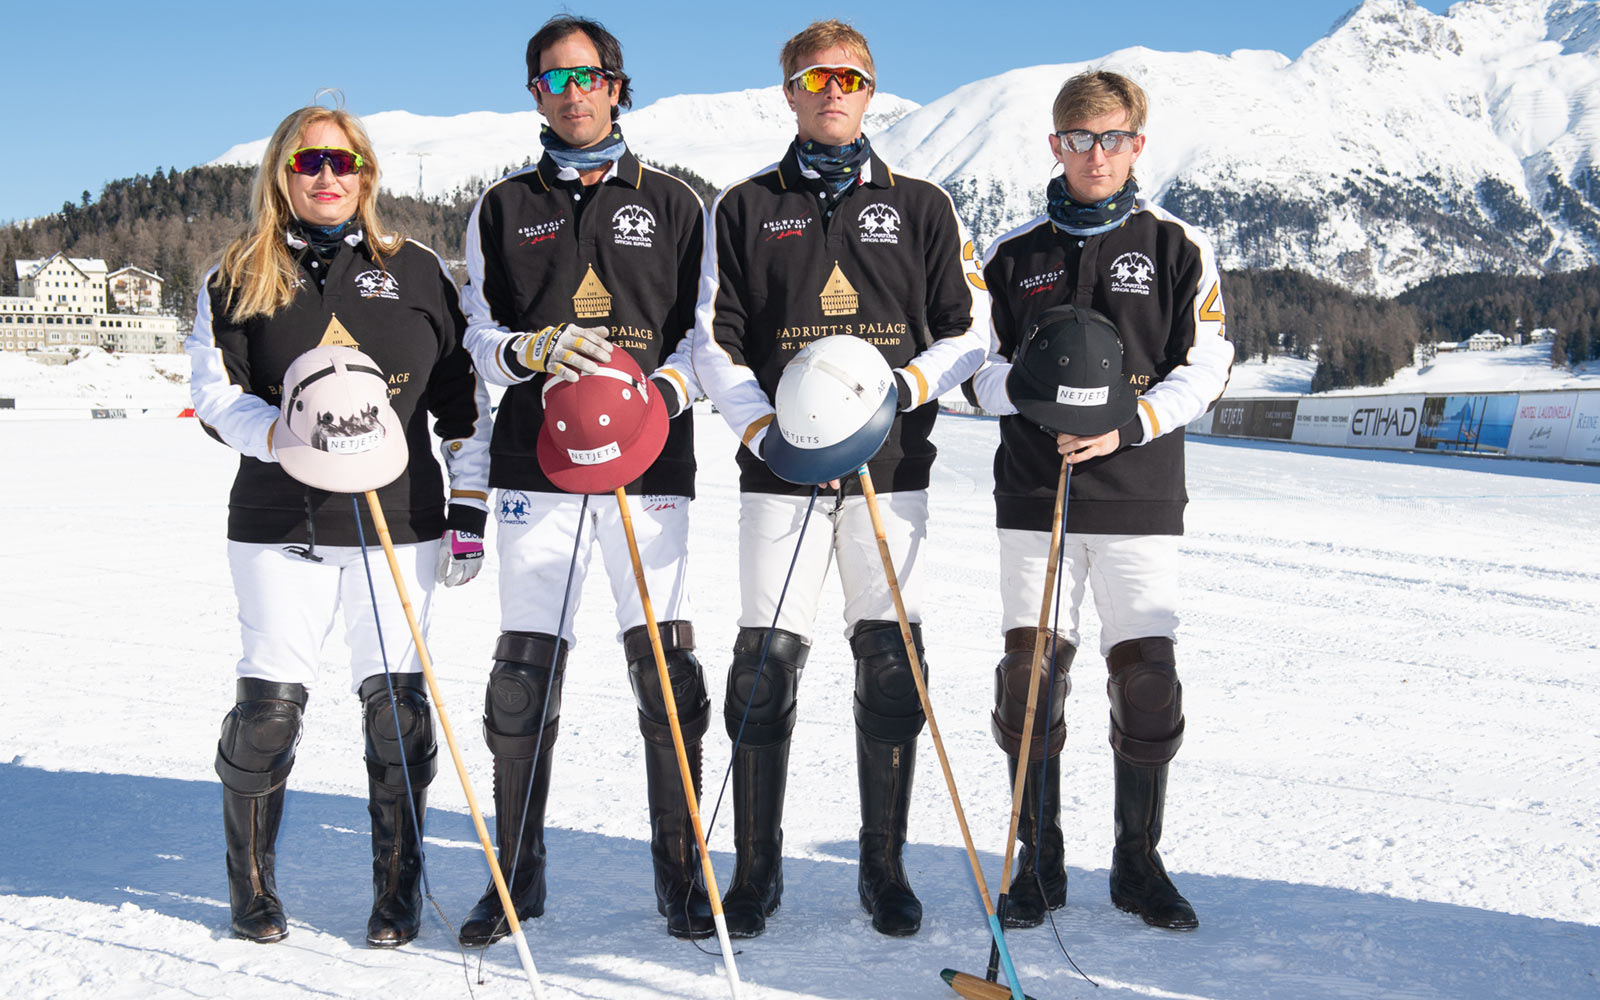 Badrutts Palace Polo Team, St. Moritz, Switzerland